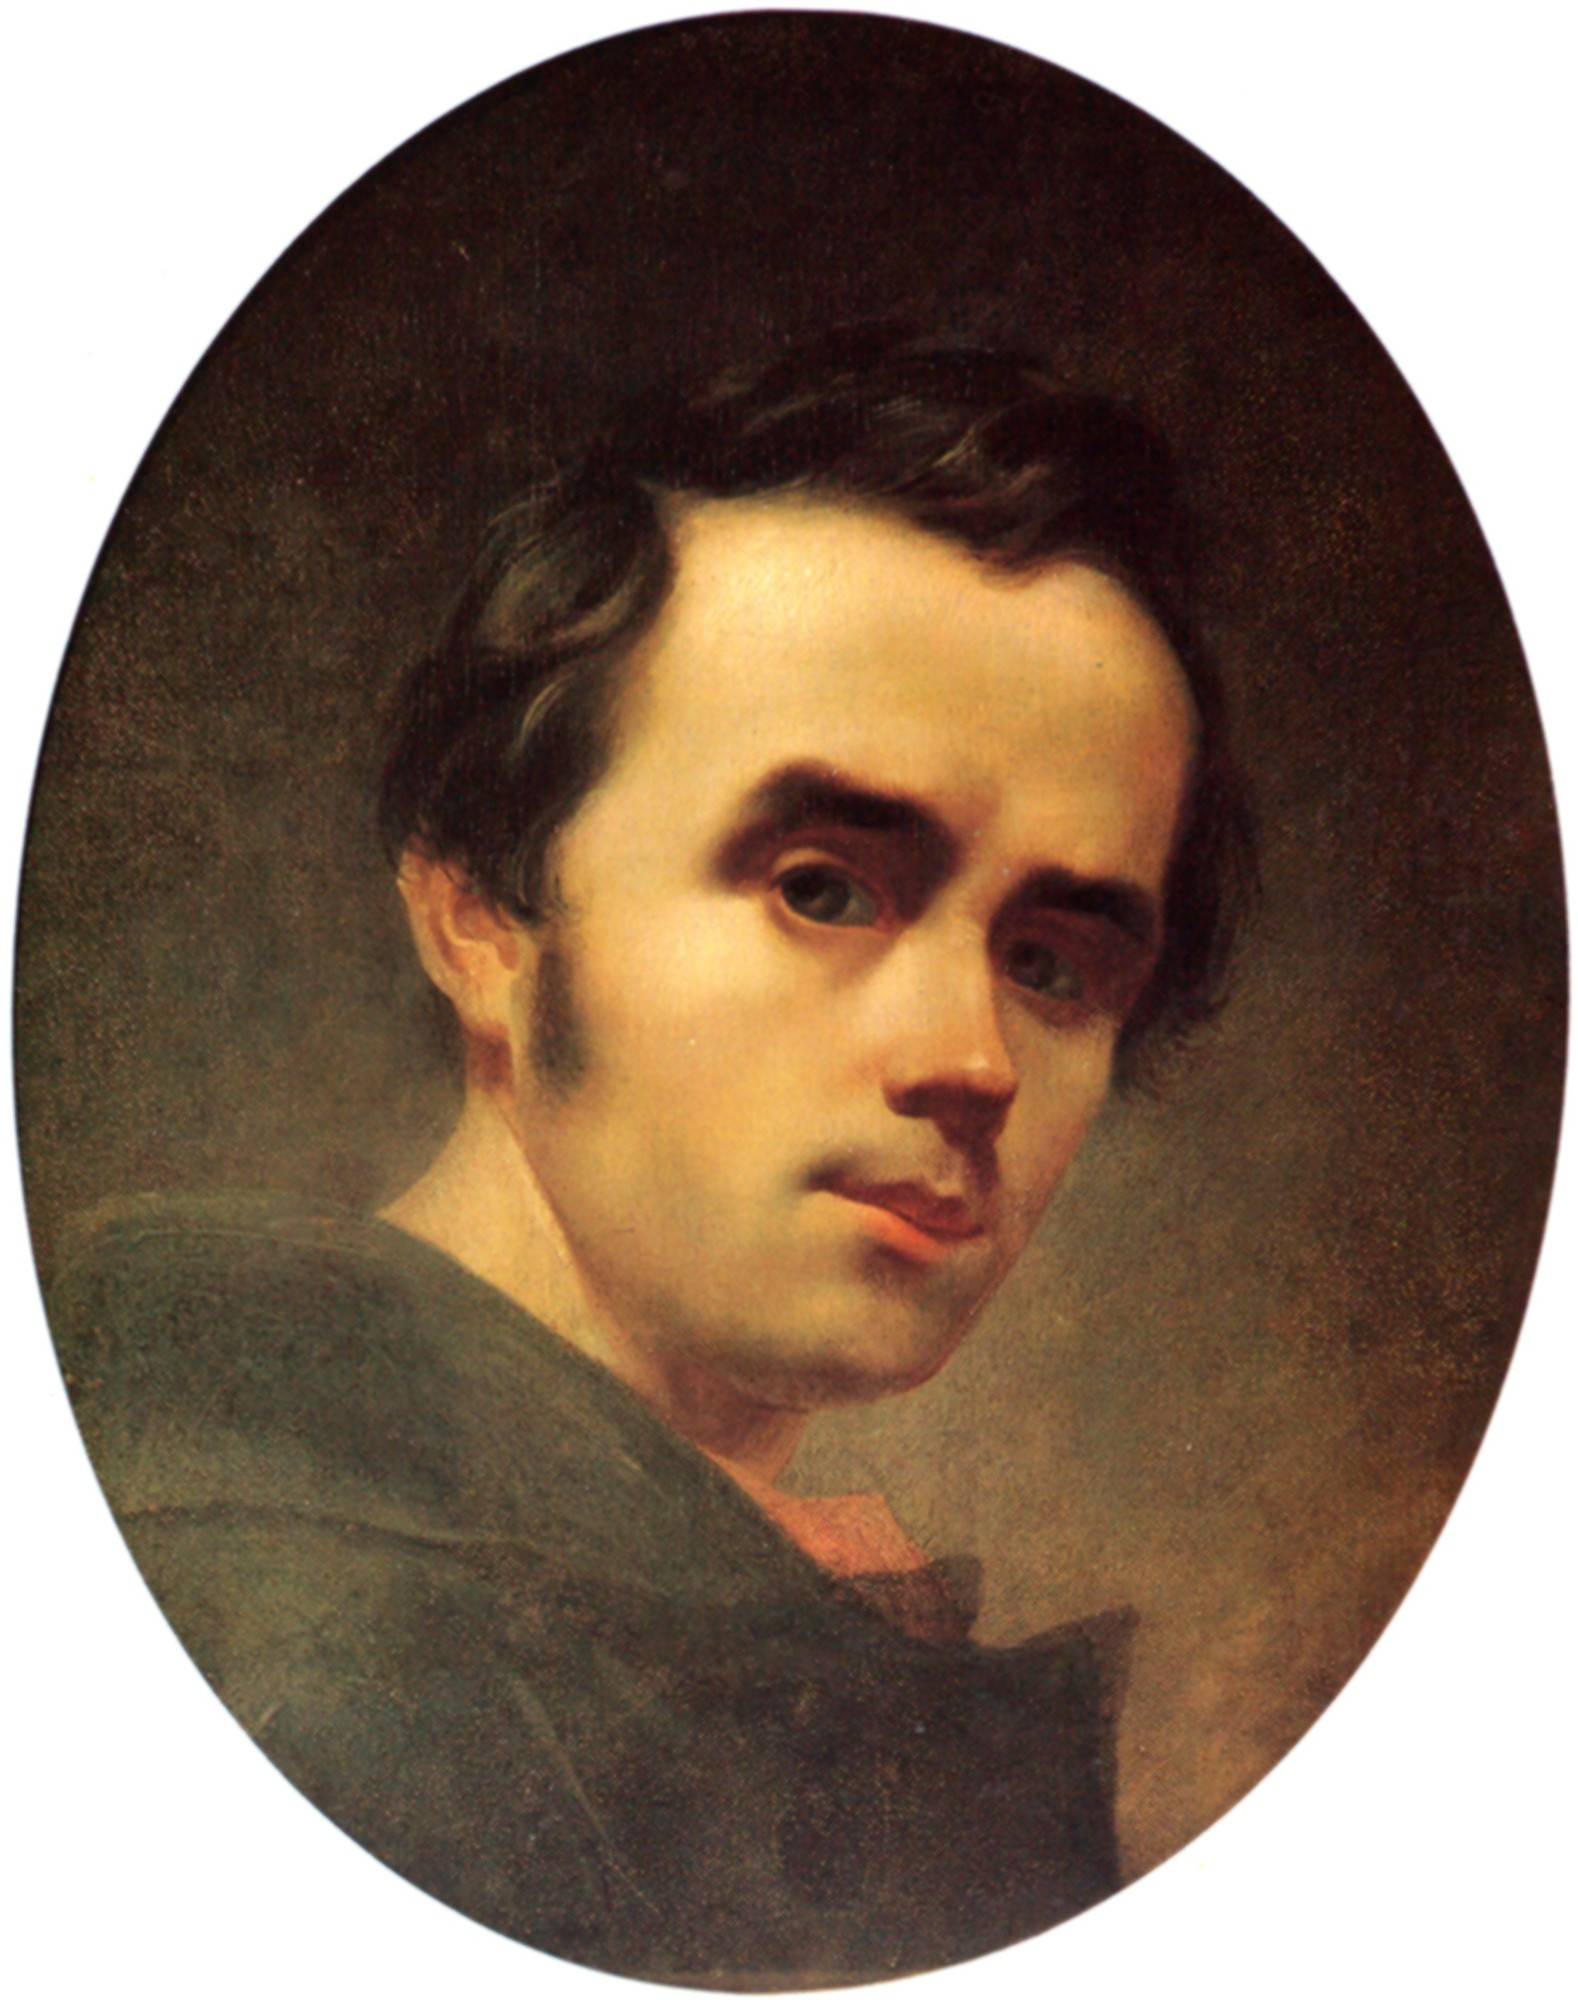 This is a self-portrait of the Ukrainian poet Taras Shevchenko.